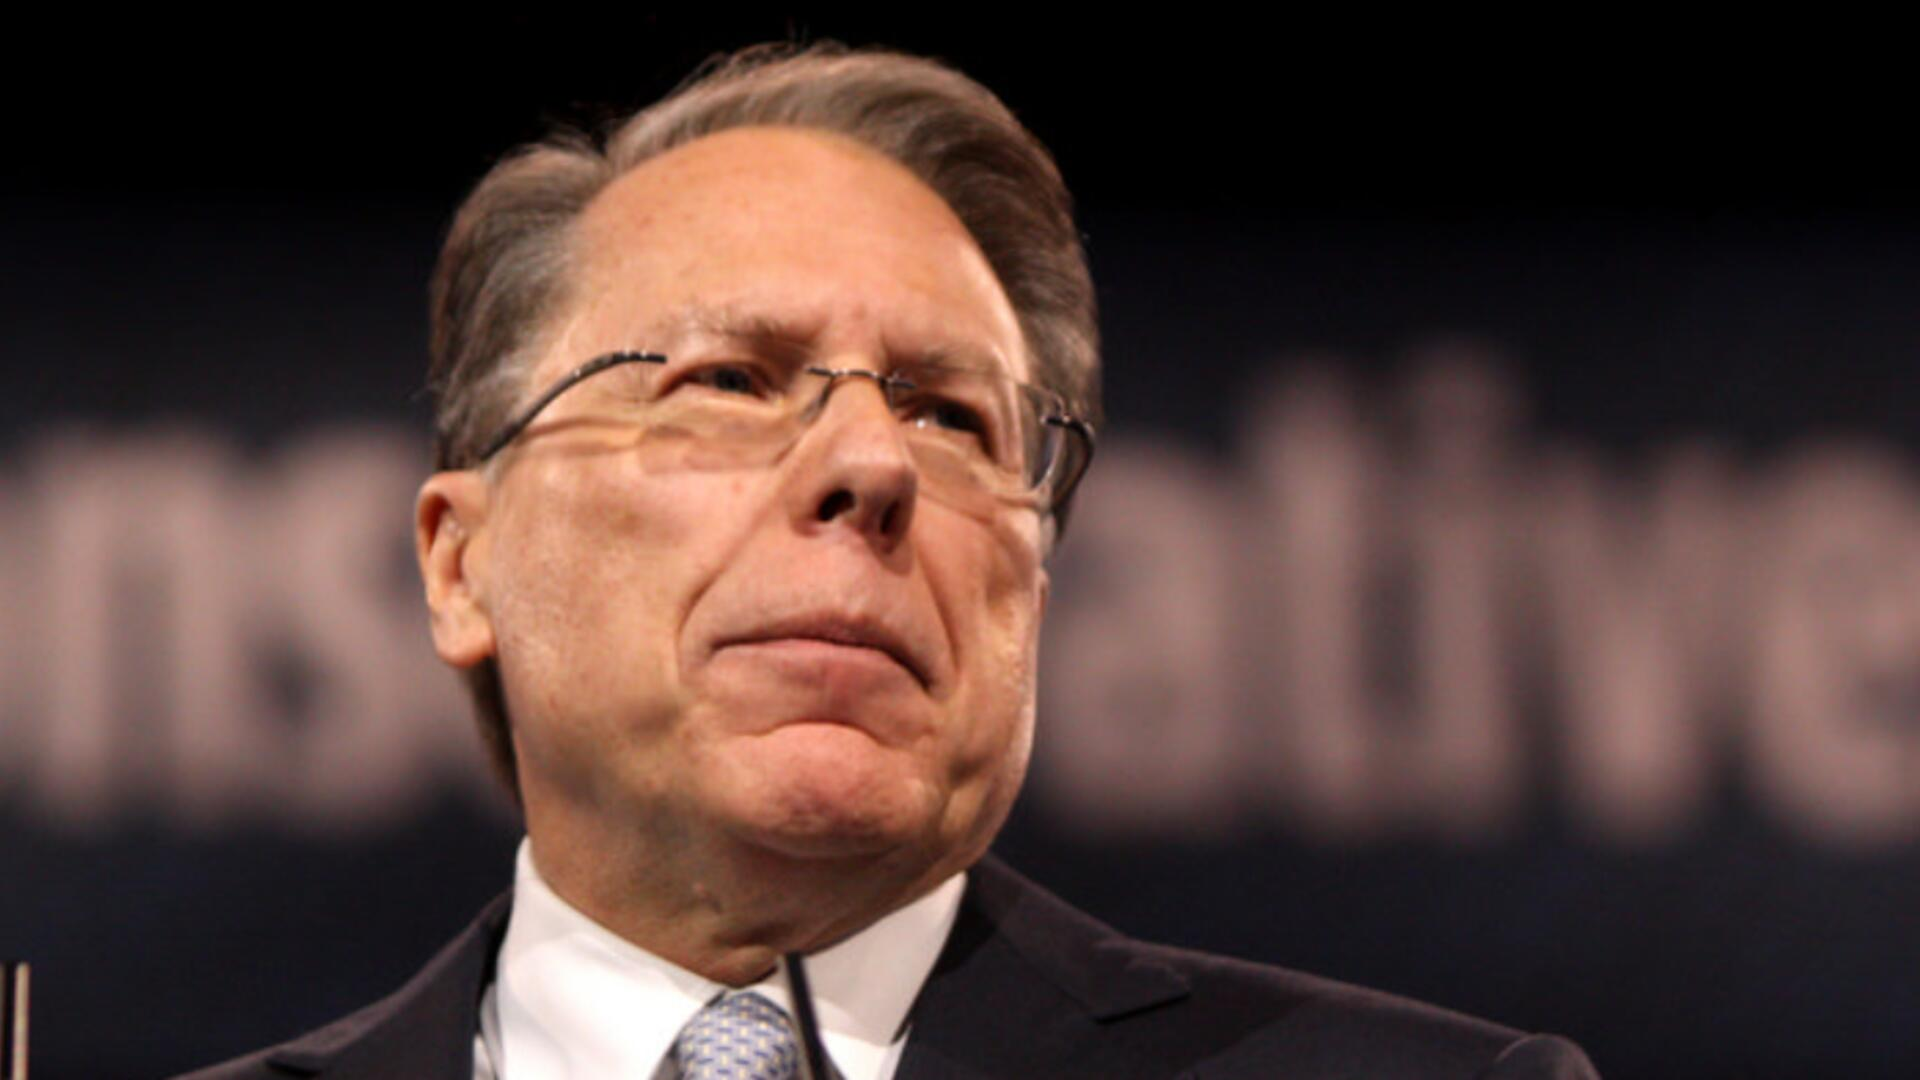 The NRA Has a Long History of Scapegoating Violent Video Games